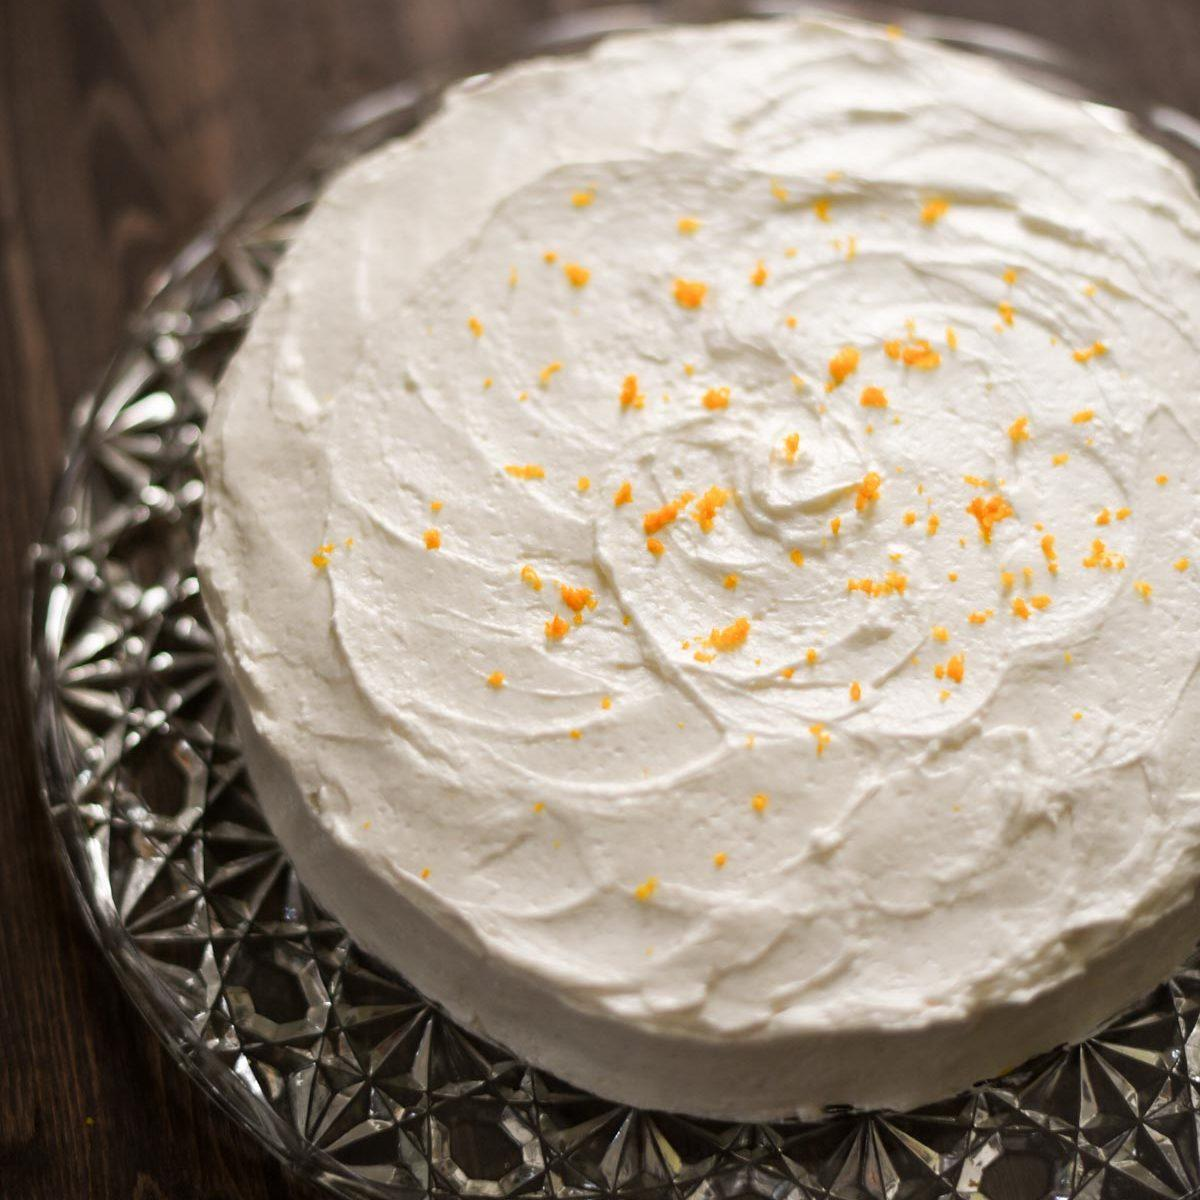 Gluten-Free Lemon Cake with Lemon Frosting Recipe